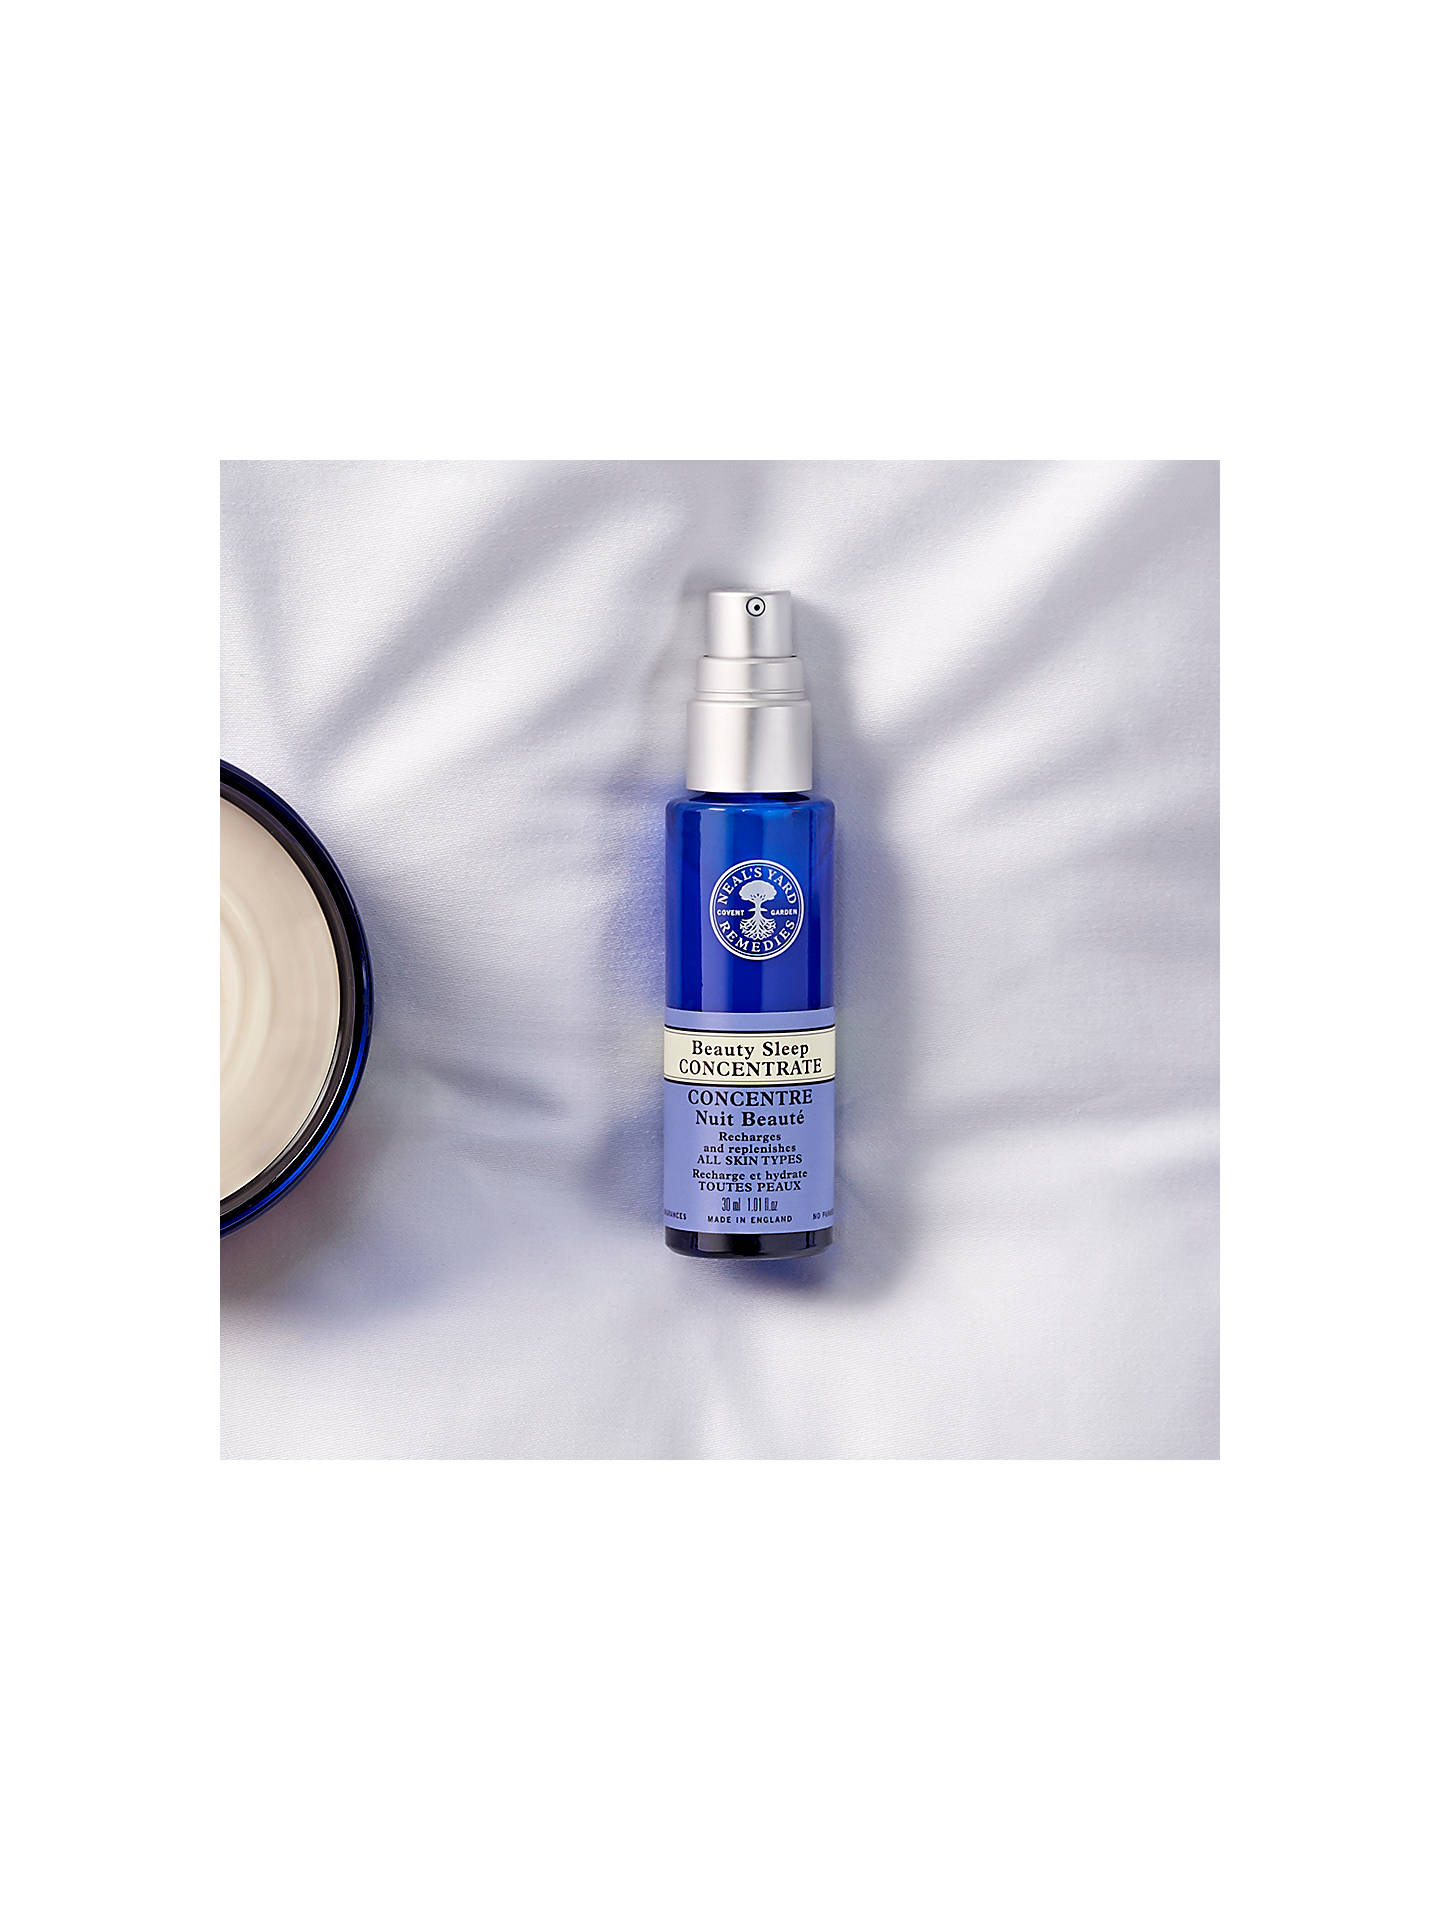 Buy Neal's Yard Remedies Beauty Sleep Concentrate Moisturiser, 30ml Online at johnlewis.com